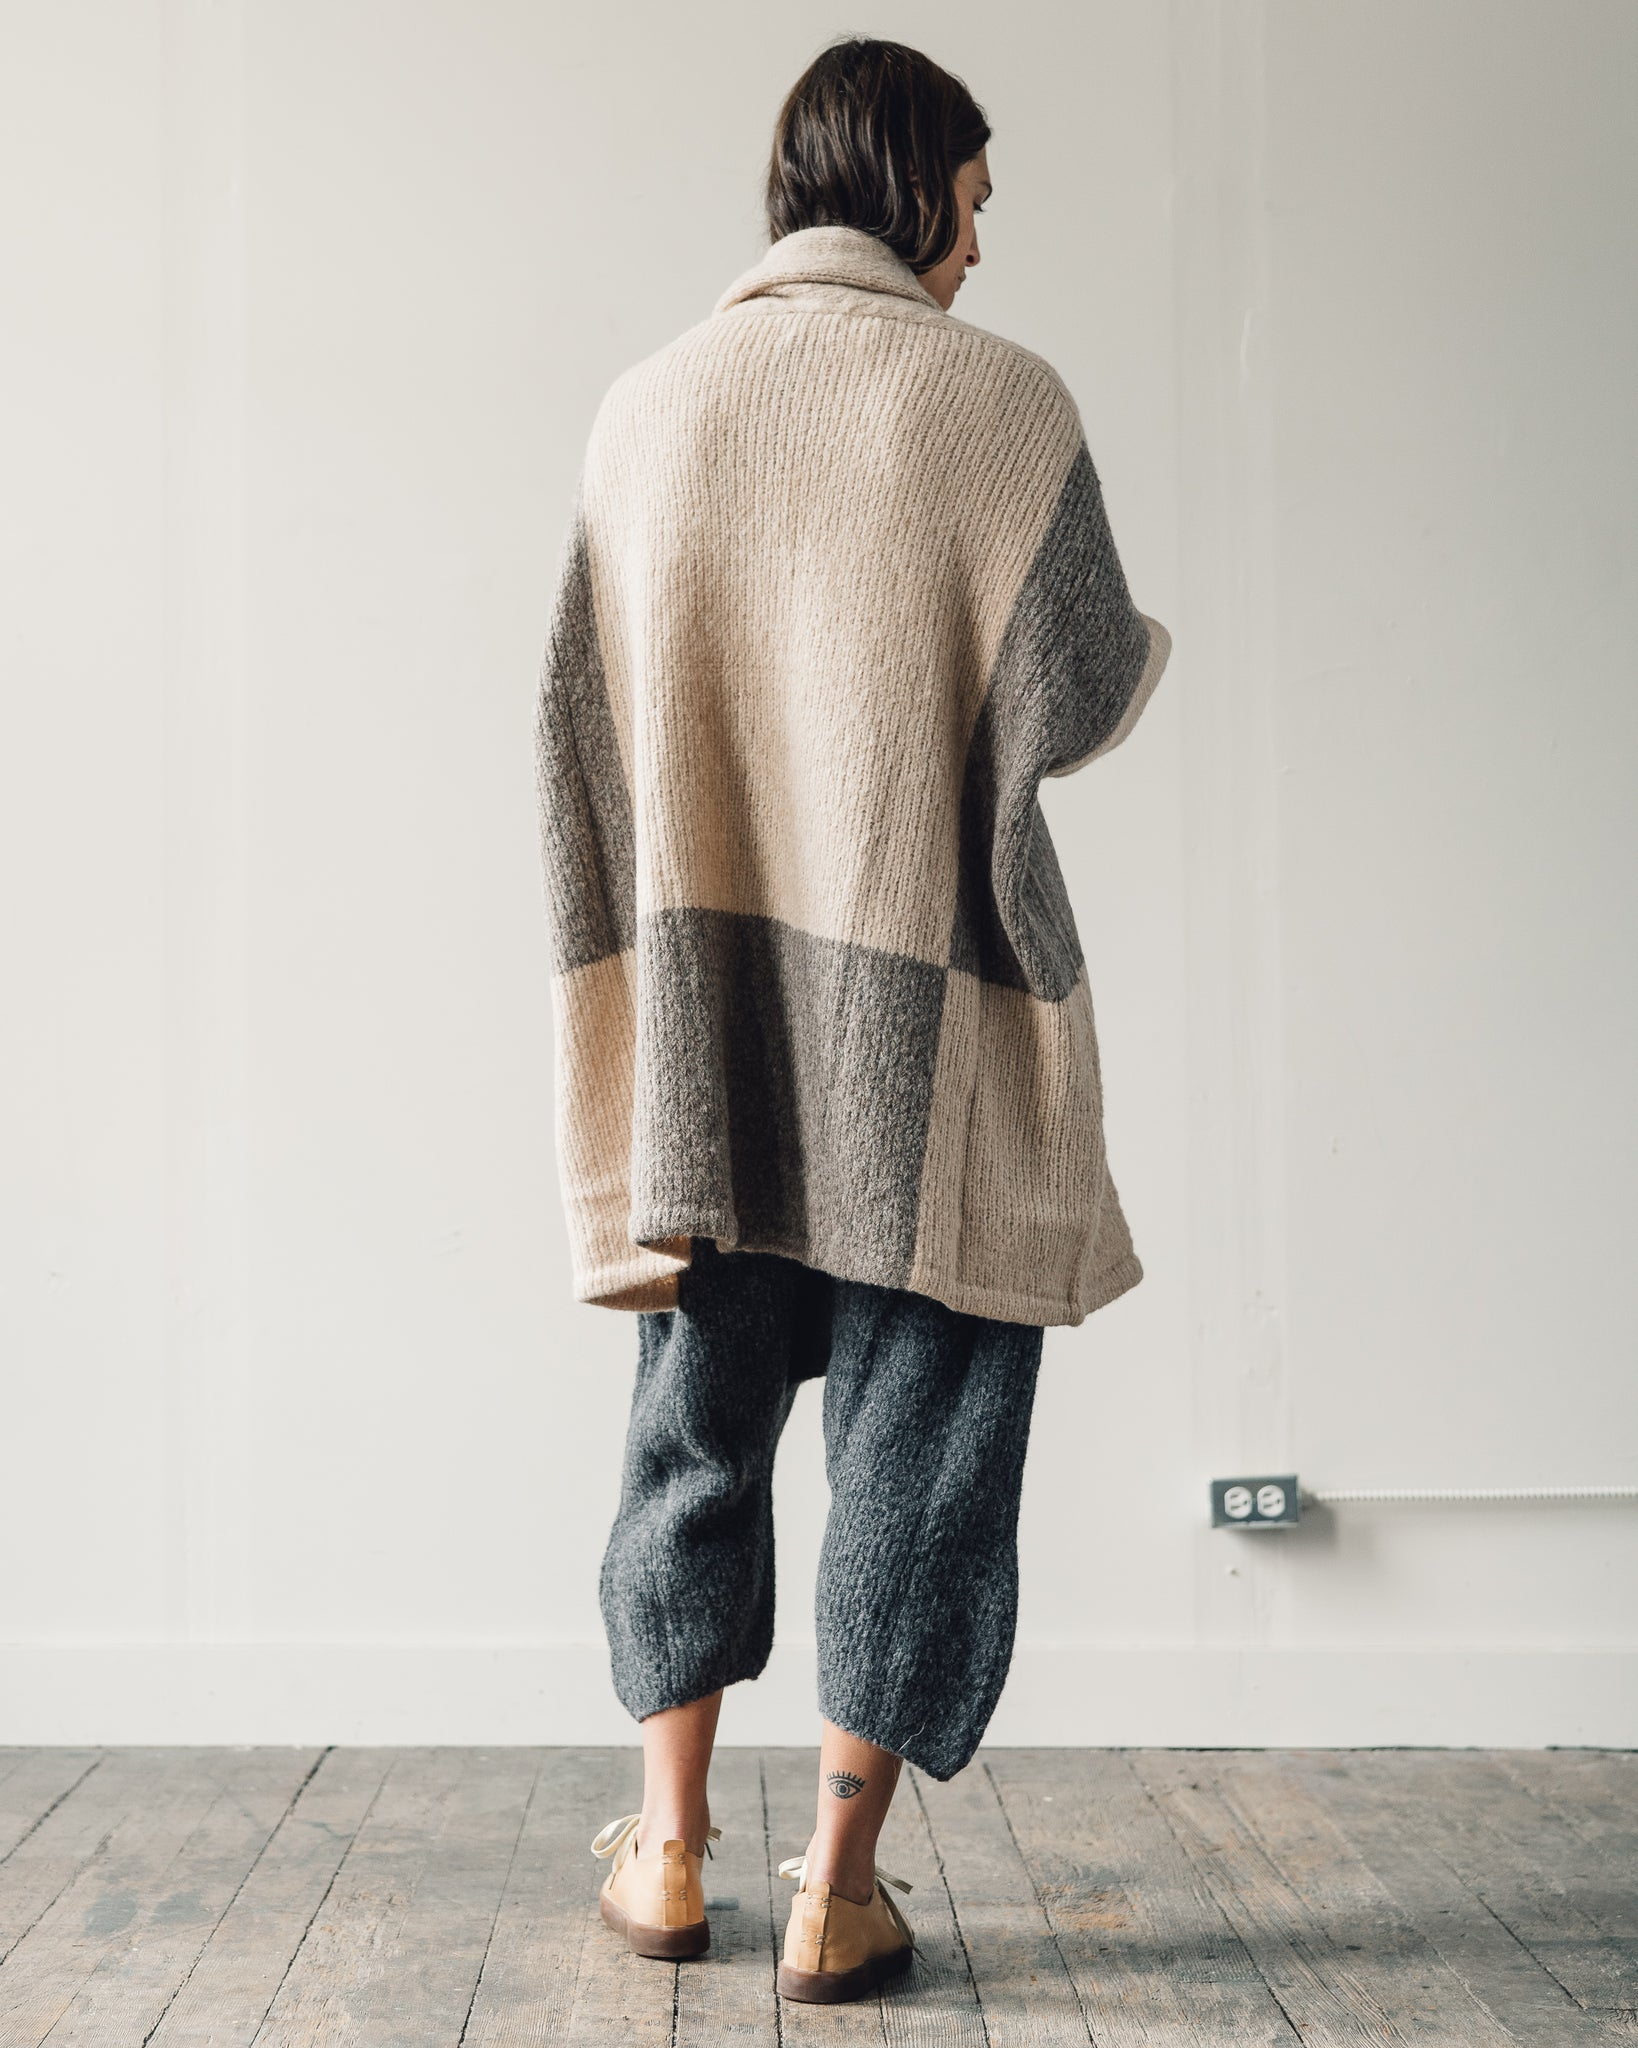 Delphine Haori Coat Blocking, Grain x Deer